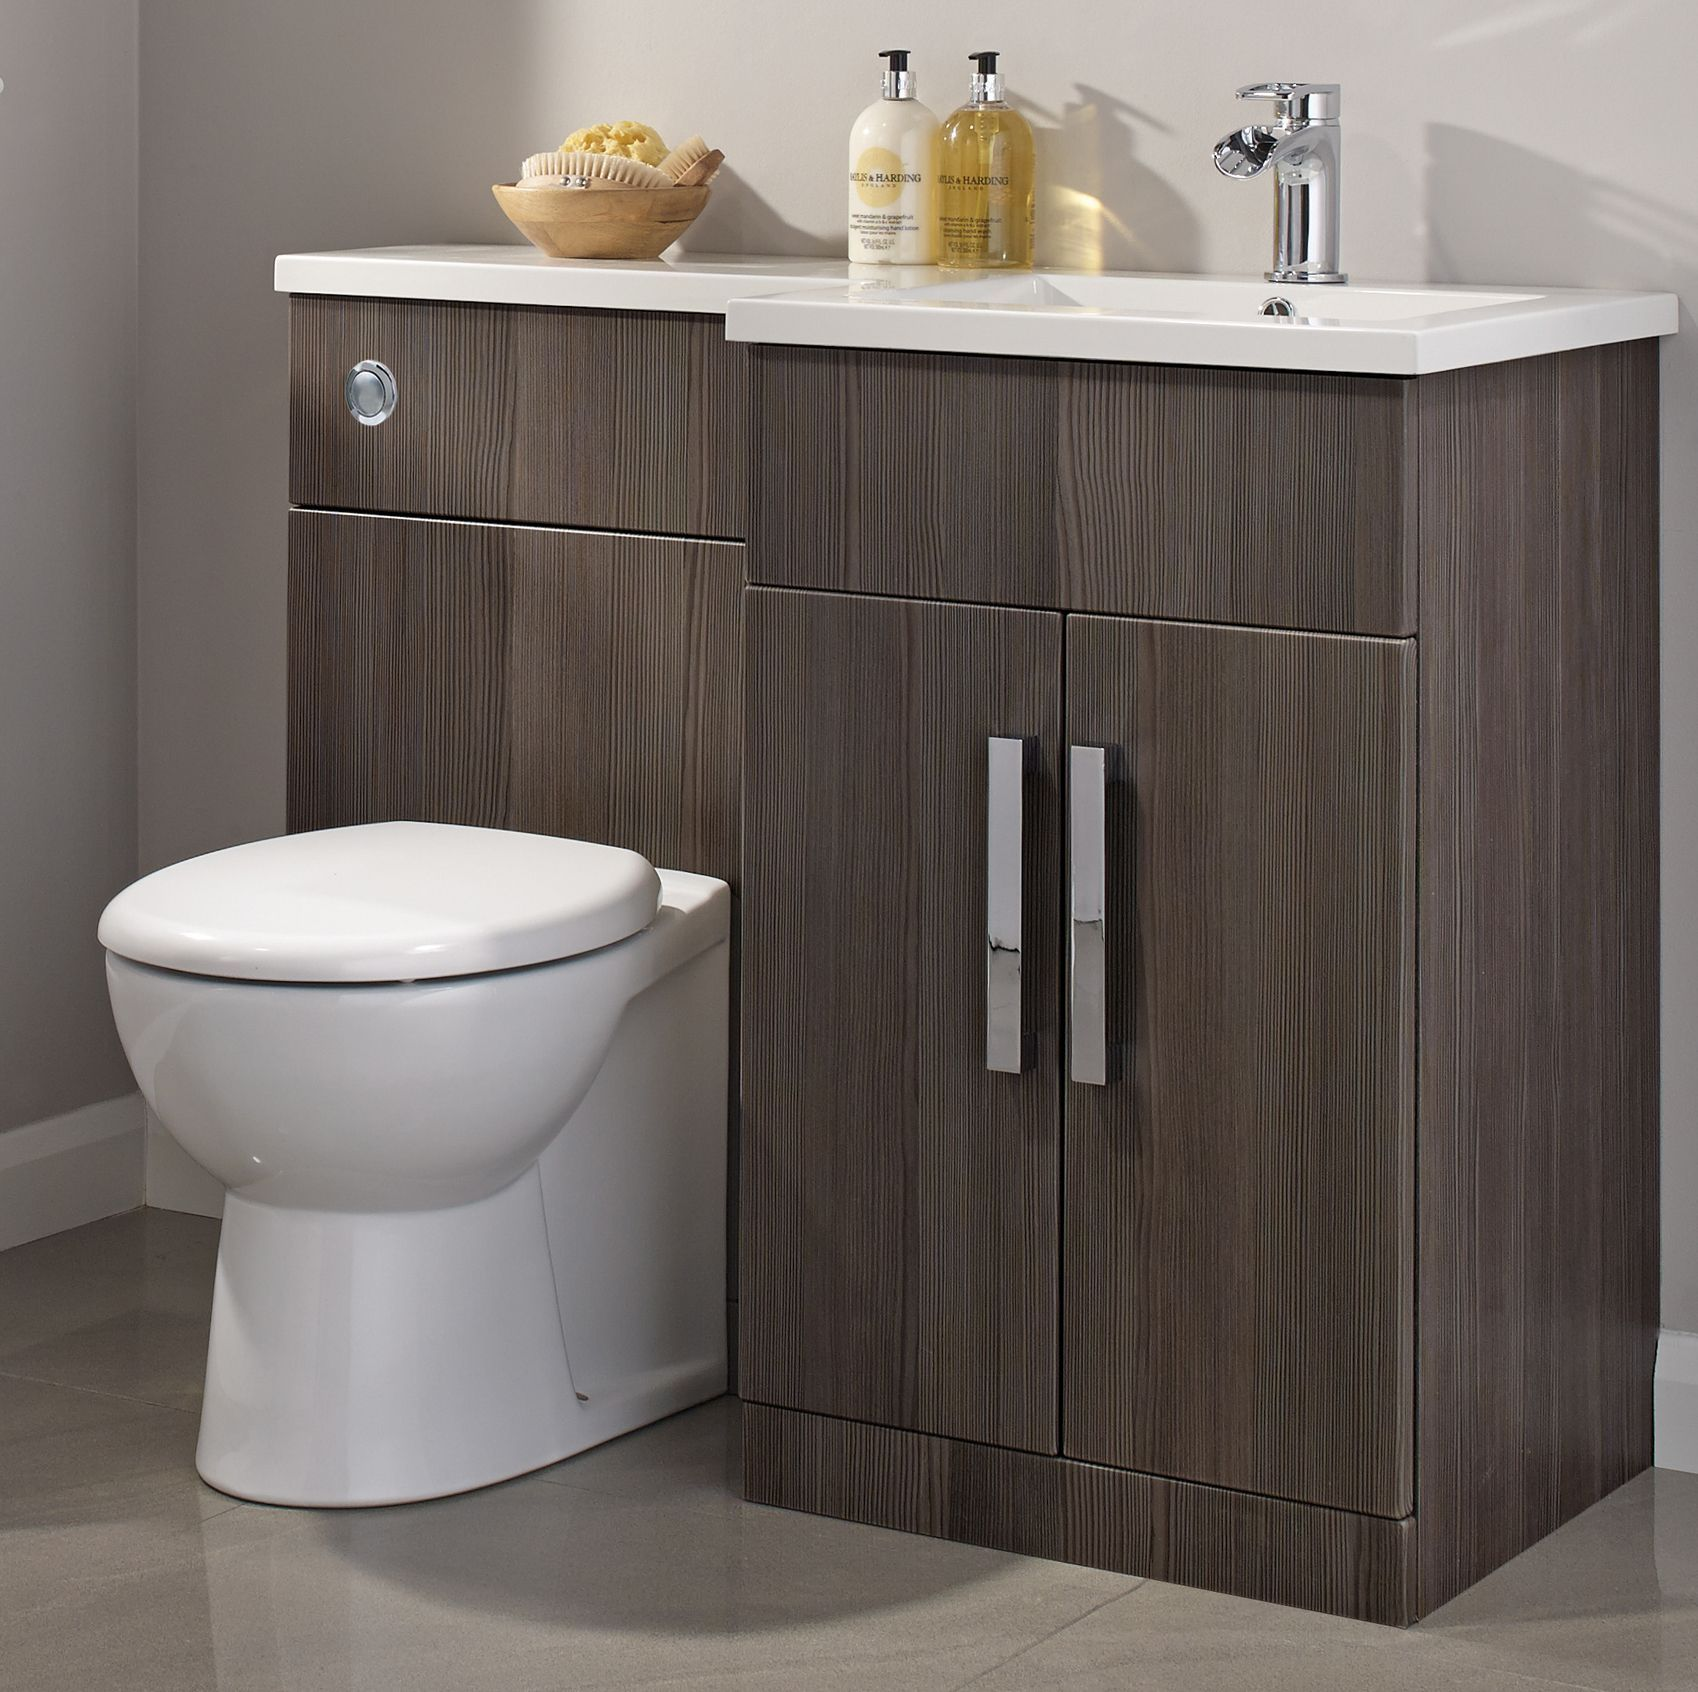 Bathroom Design B&Q cooke & lewis ardesio bodega grey rh vanity & toilet pack | toilet